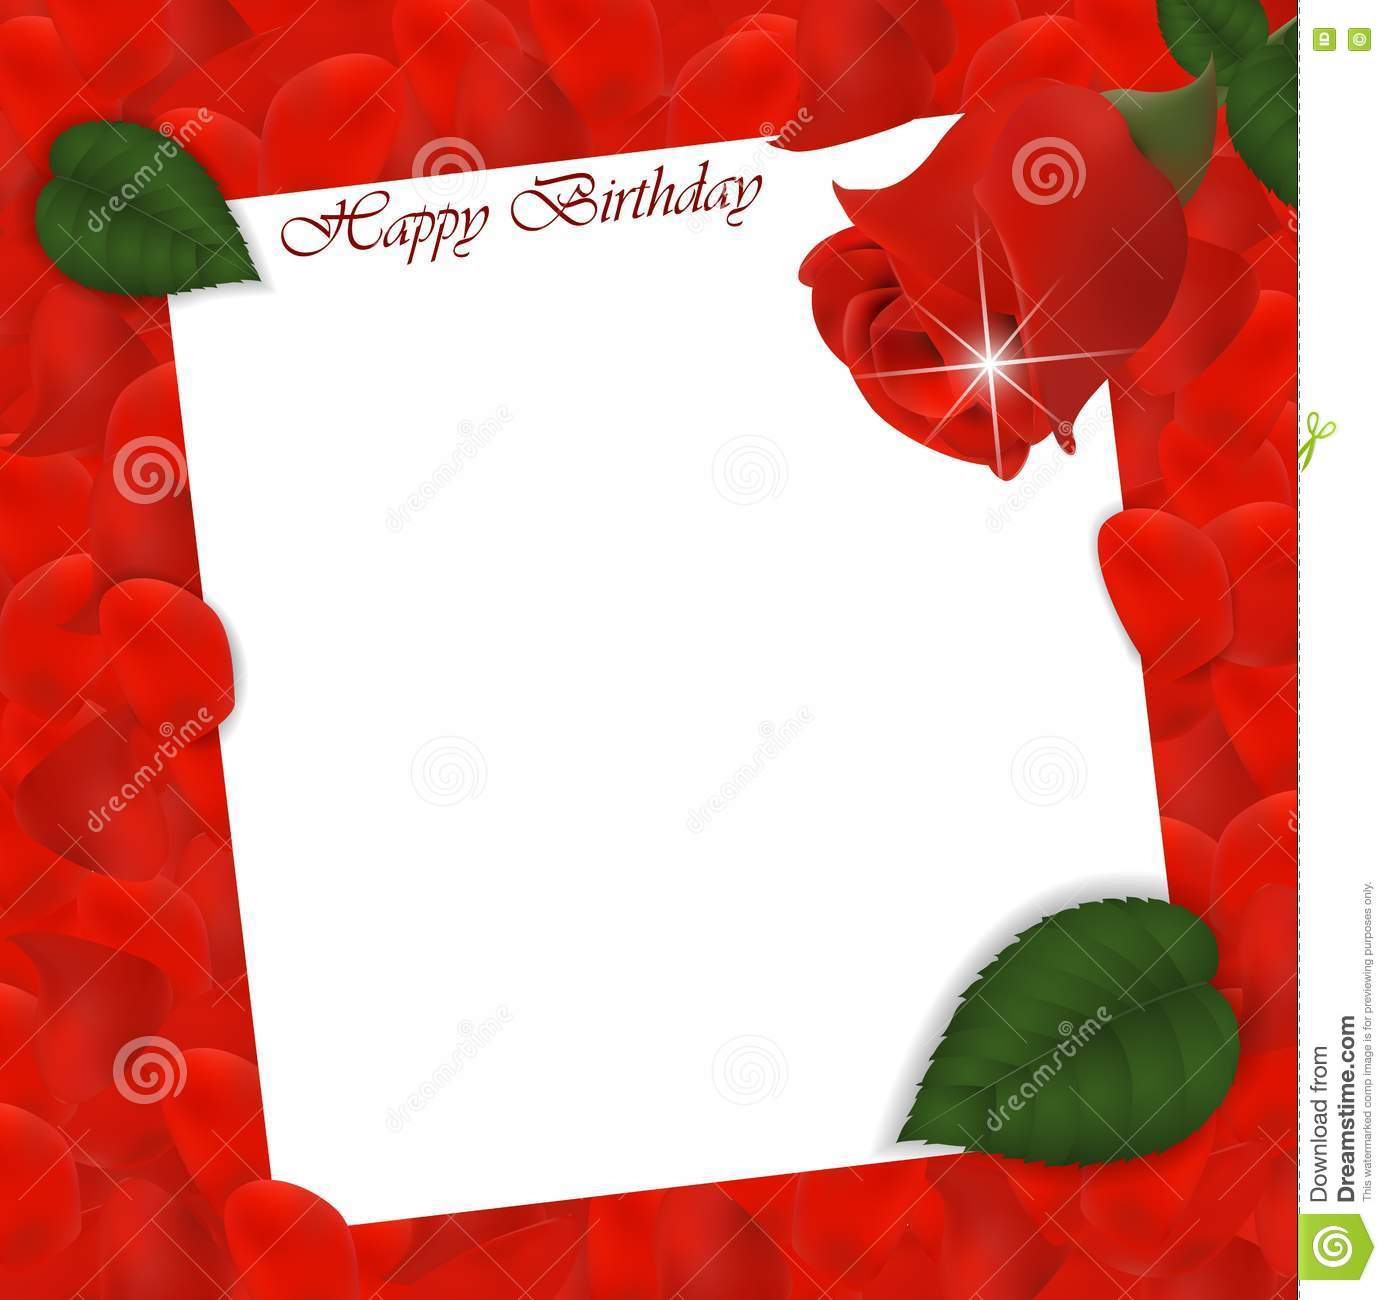 Happy Birthday Card With Roses Flower